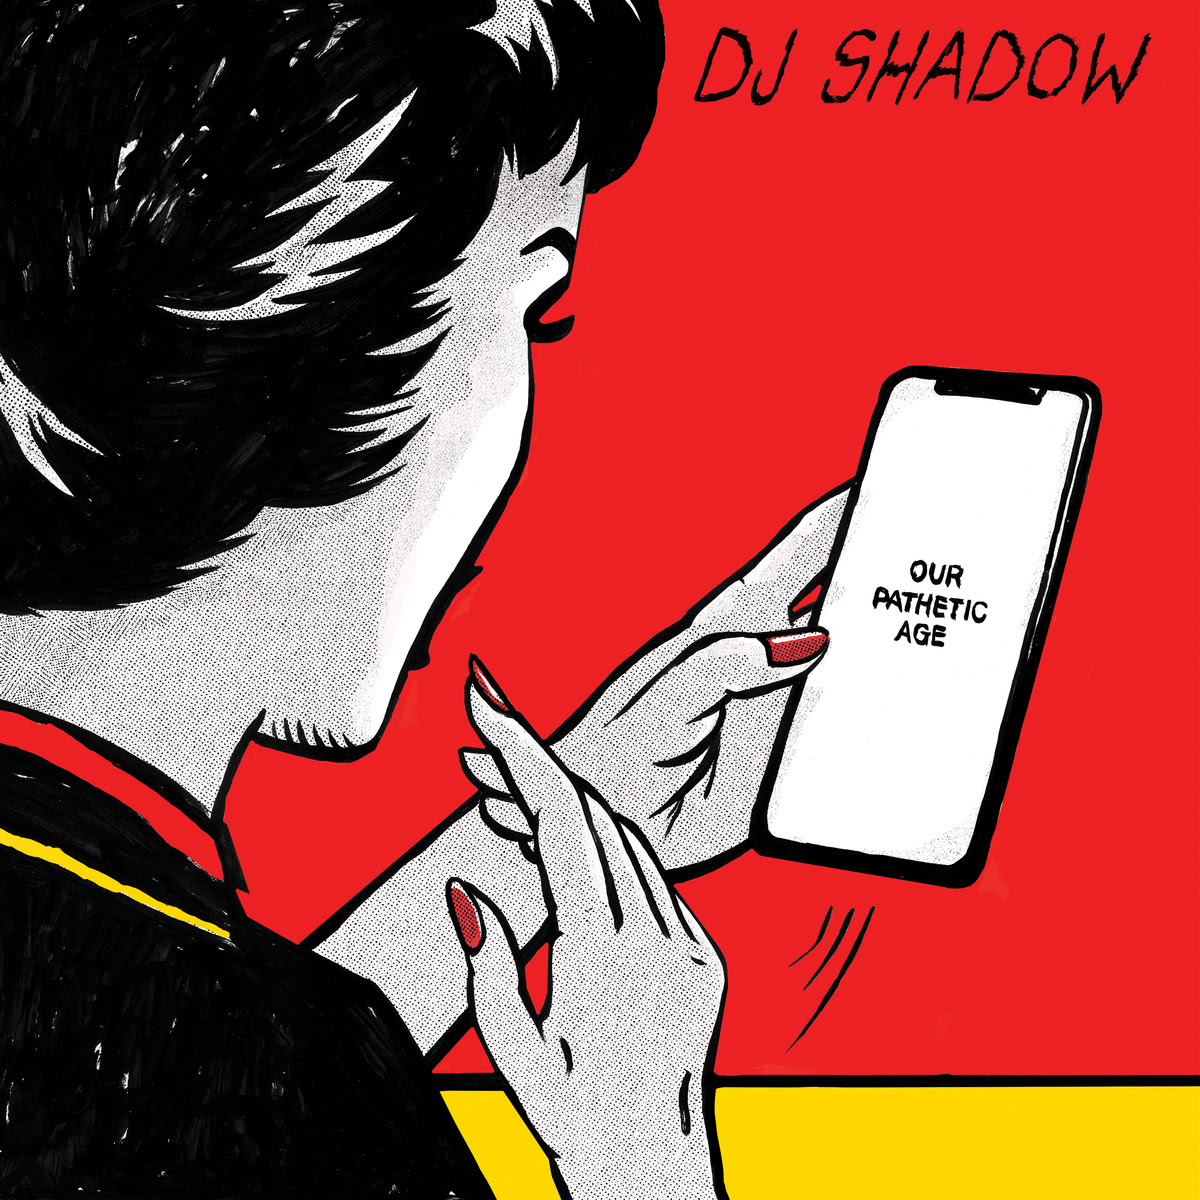 dj-shadow-objavio-novi-album-our-pathetic-age